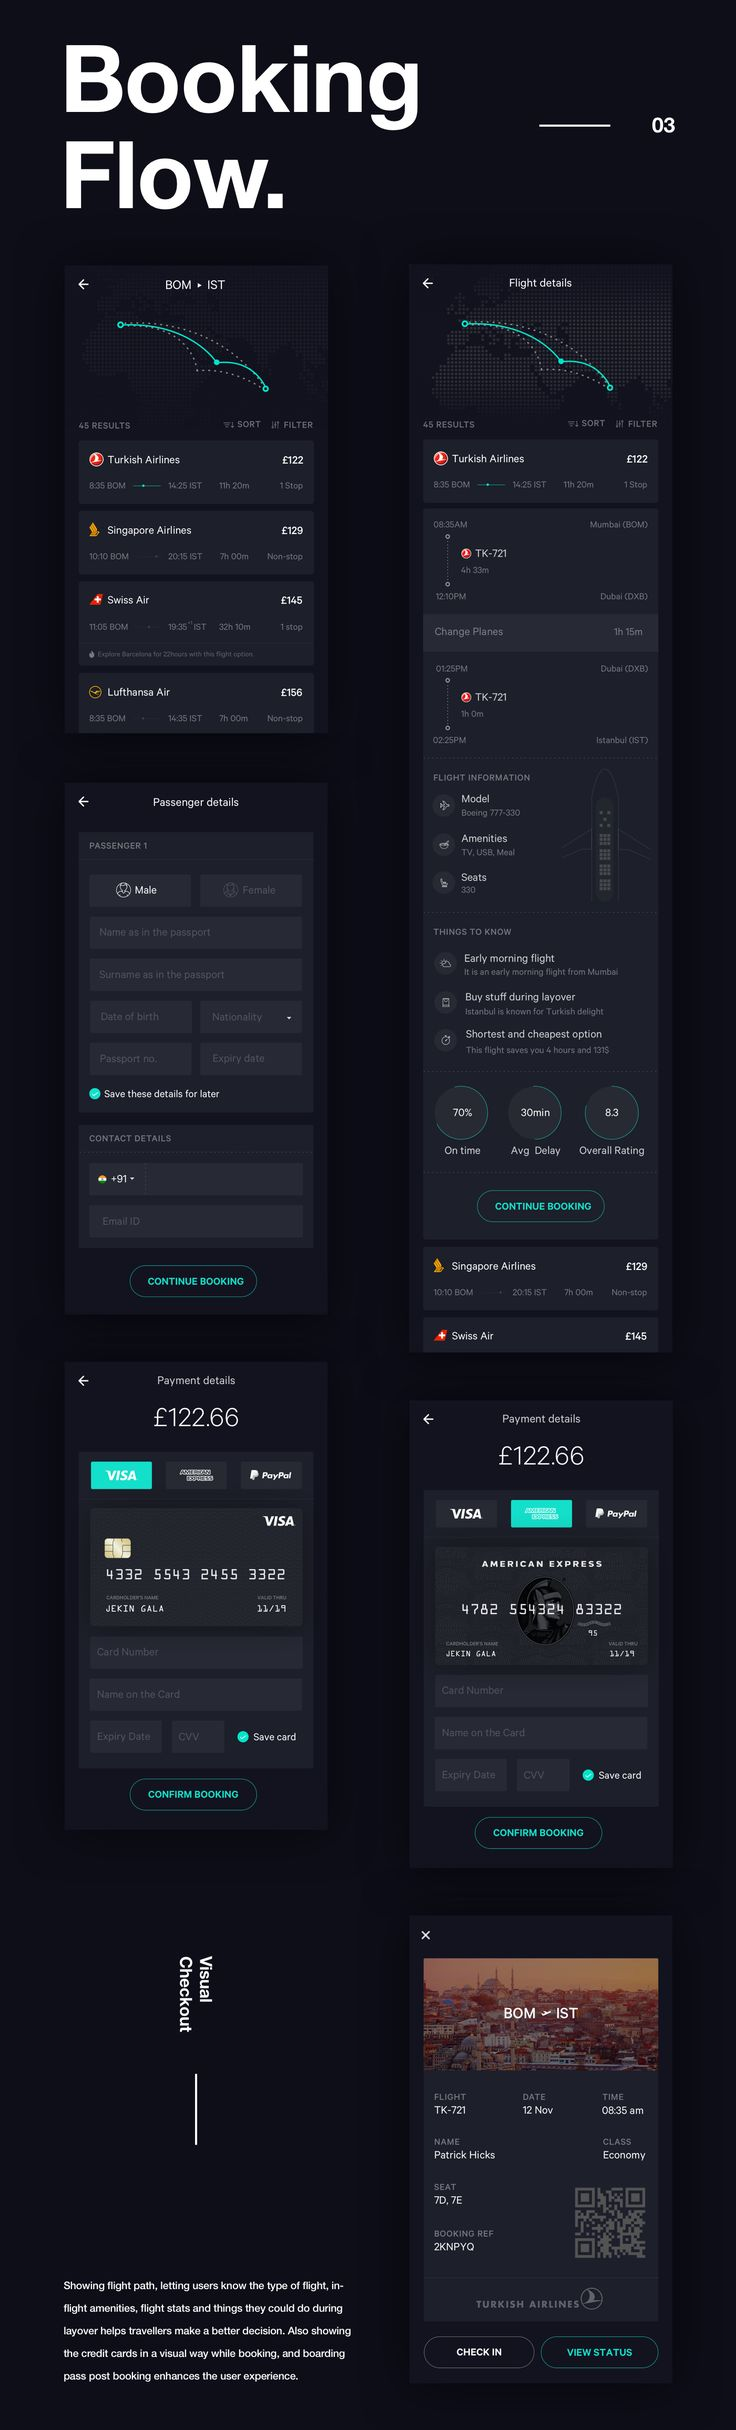 Travelers today want a flight booking app that takes care of the booking along with logistics so that they can just sit back and relax. Sadly, most of the apps out there don't focus on post booking experience. So I designed a concept app that takes care o…